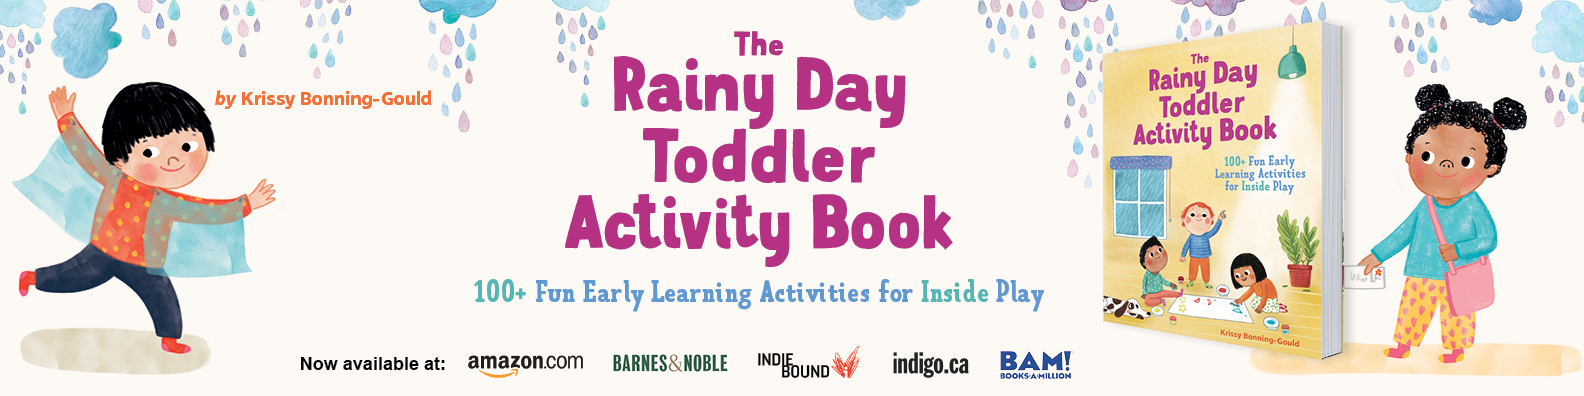 Rainy Day Toddler Activity Book